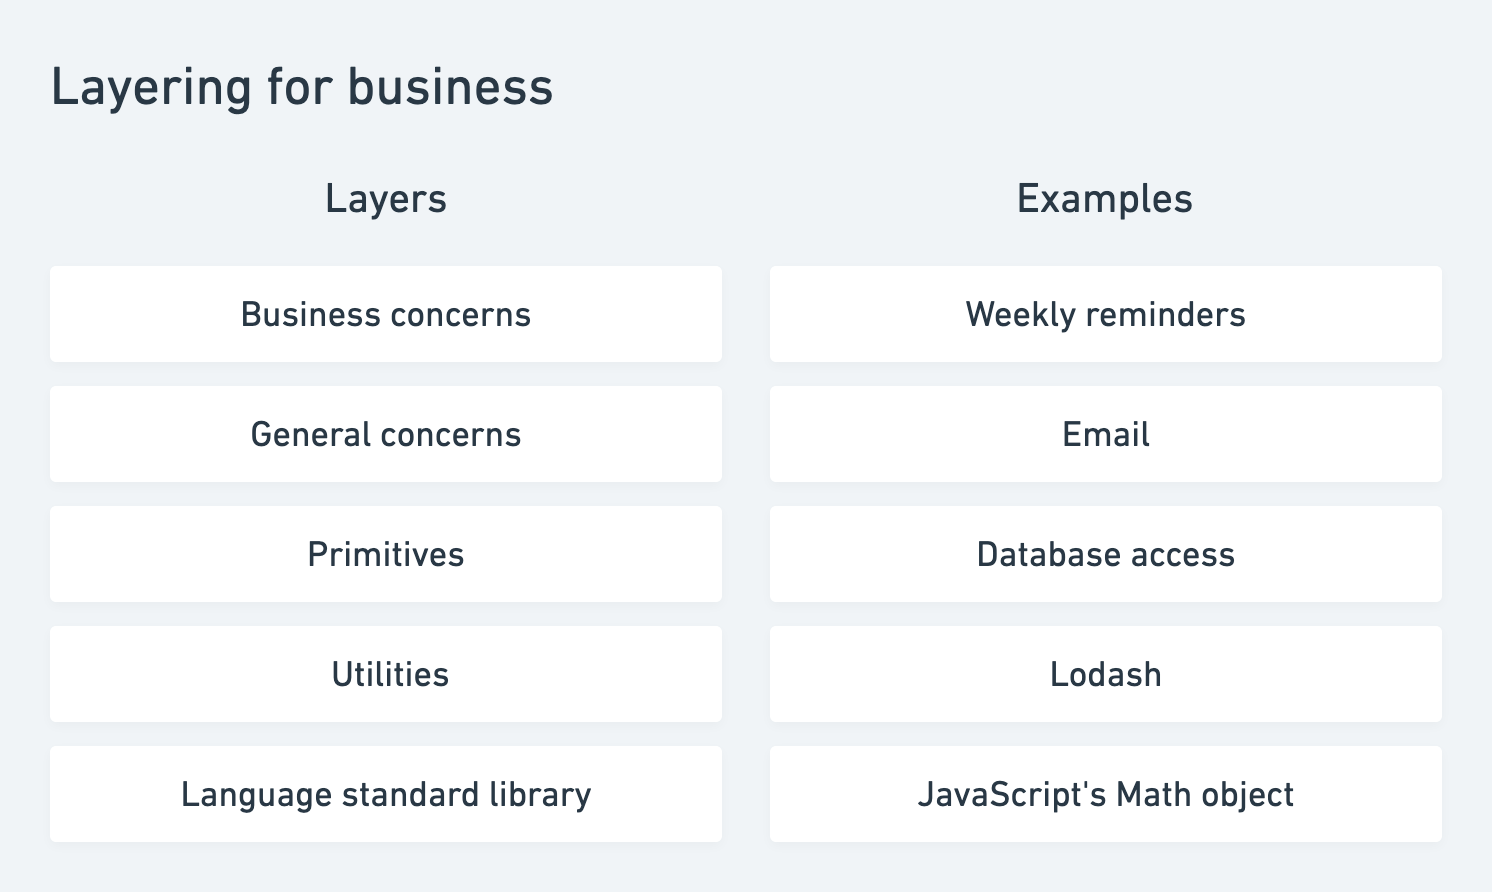 Layering for business. The layers are listed along with an example for each.